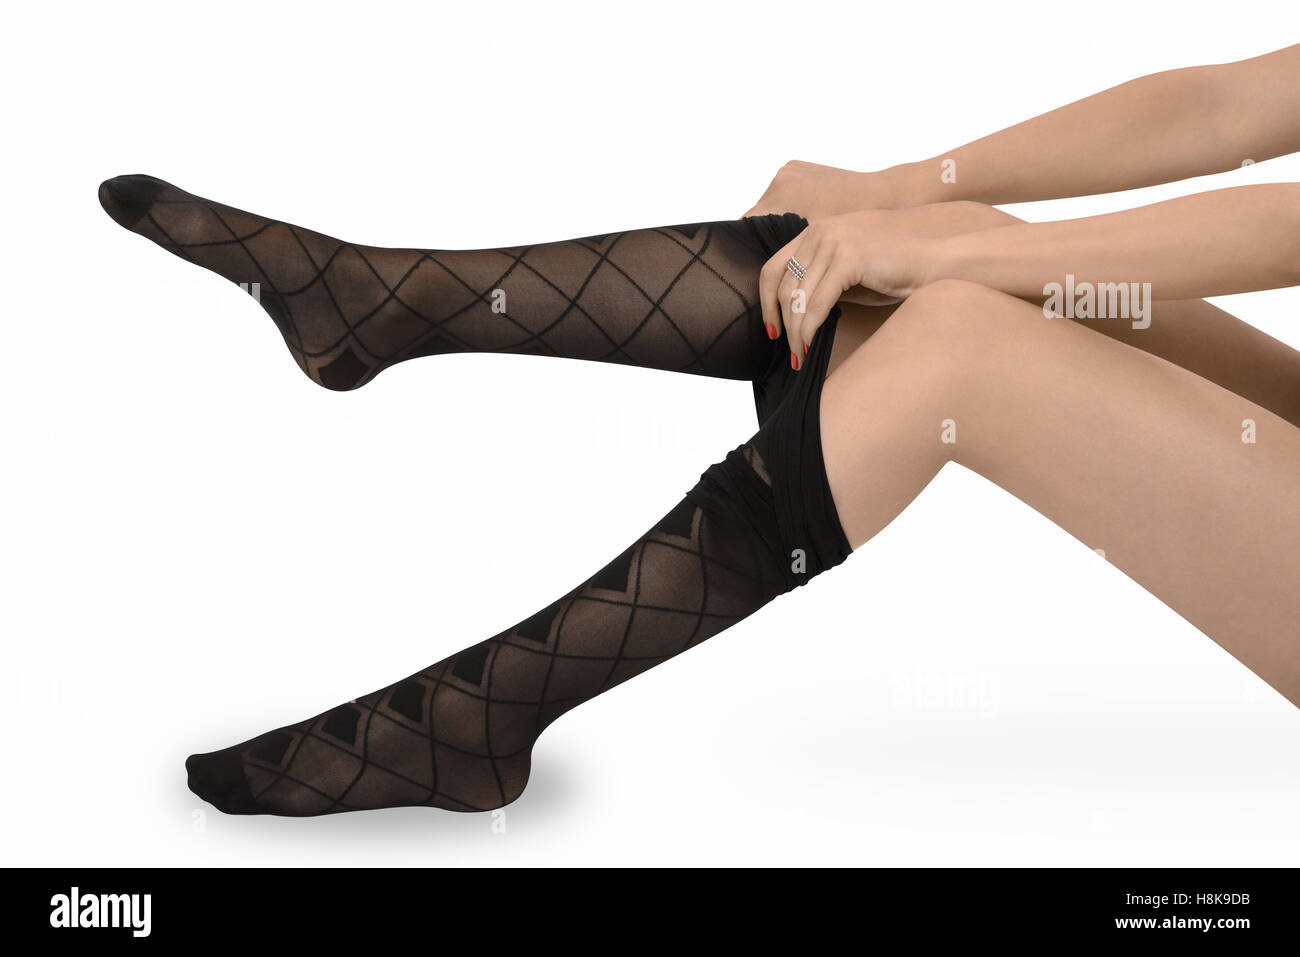 Woman legs dressing up her nylons pantyhose stockings Stock Photo